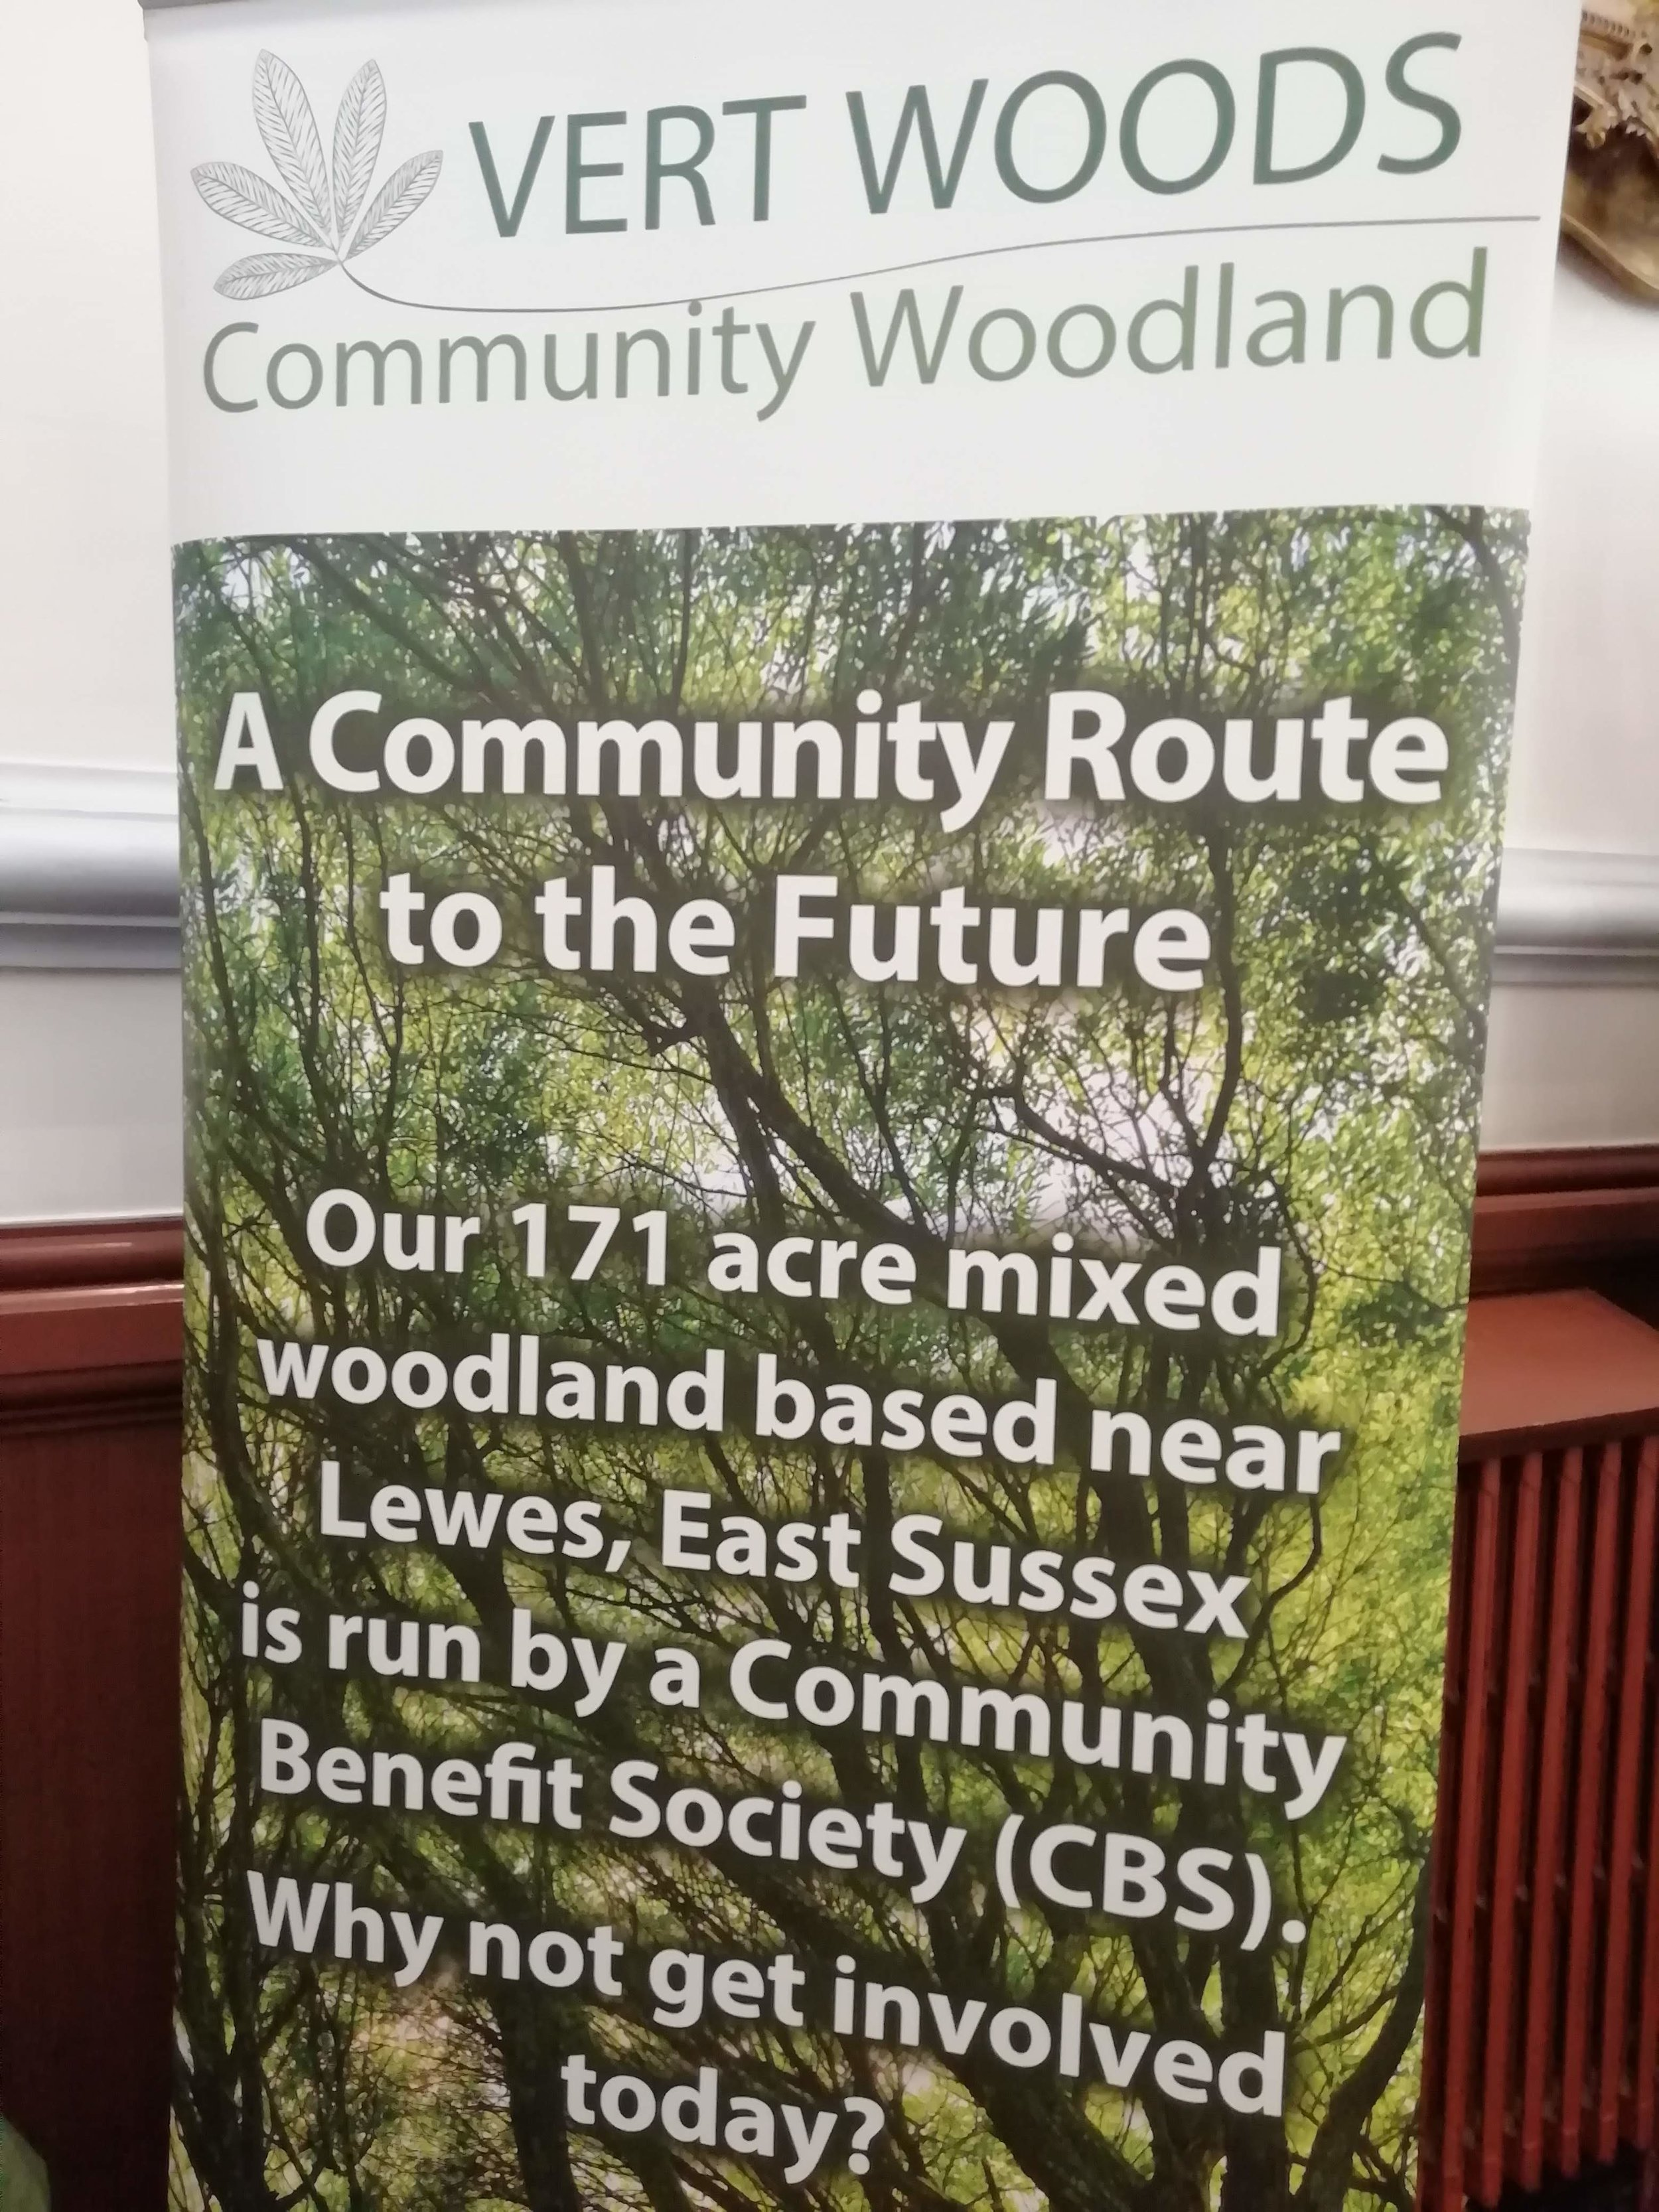 Community woodland enterprise